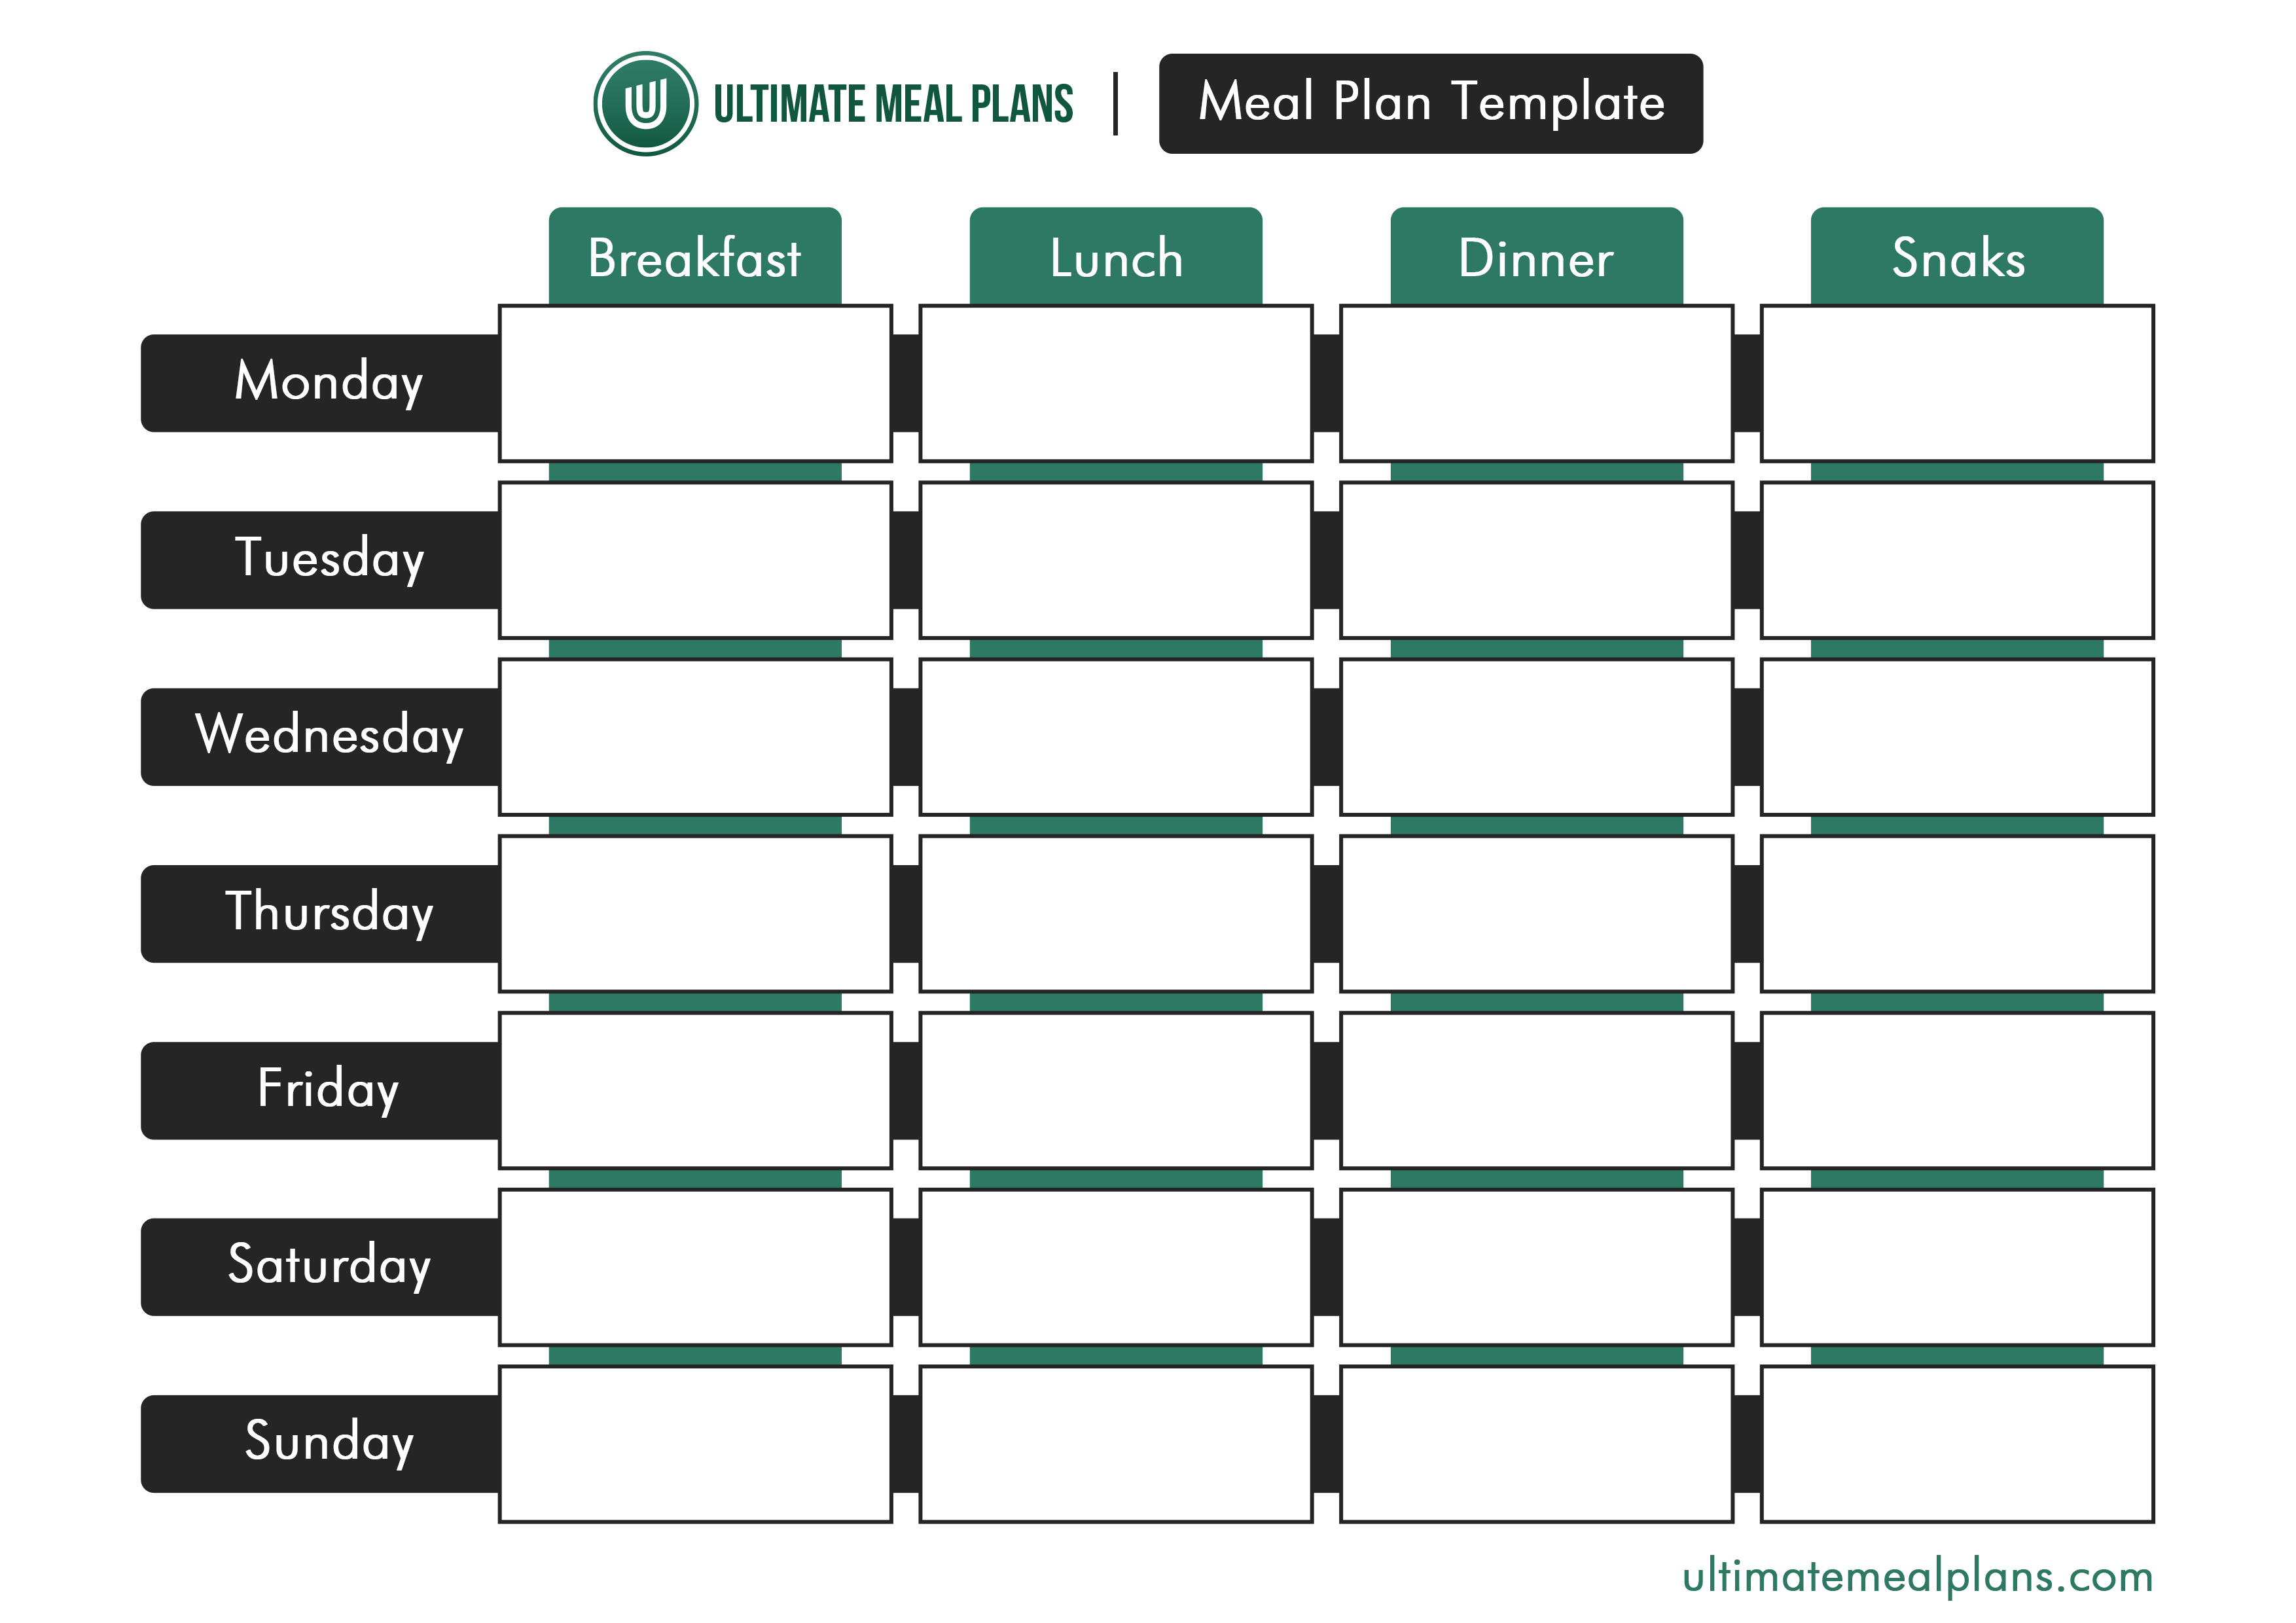 meal-plan-template